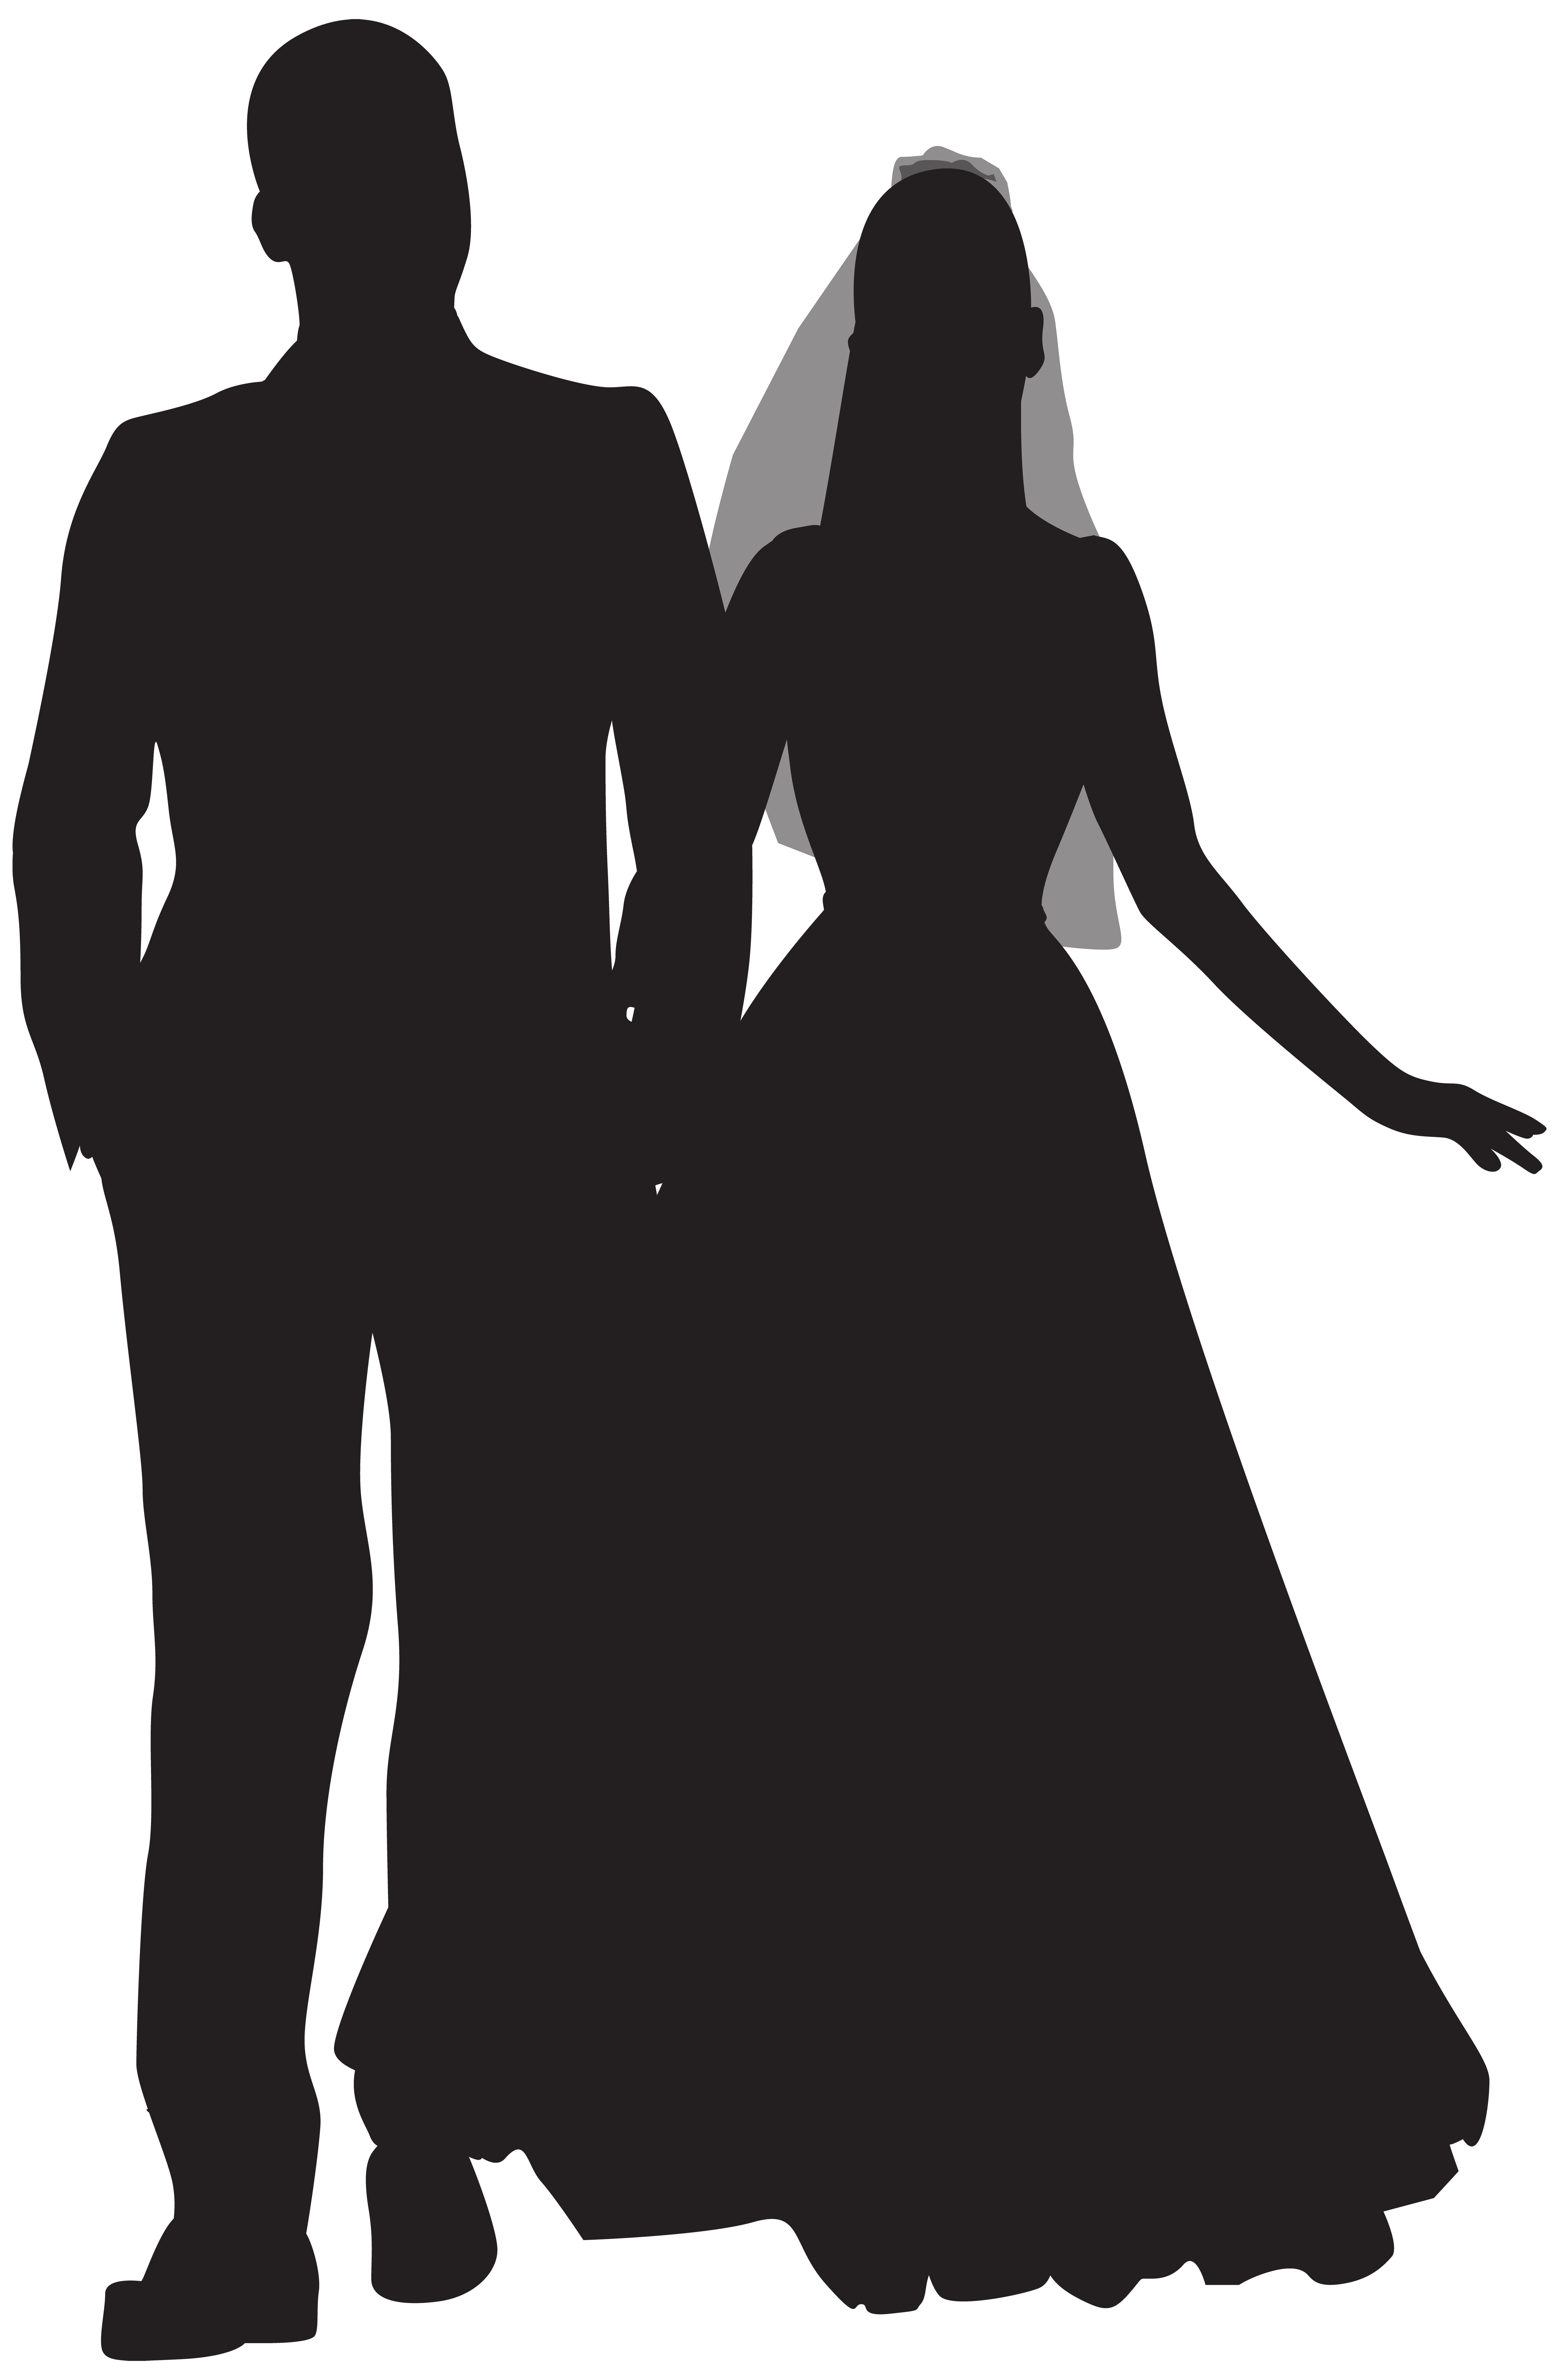 Wedding couple silhouette clipart png clipart transparent download Wedding Couple PNG Silhouette Clip Art | Gallery ... clipart transparent download